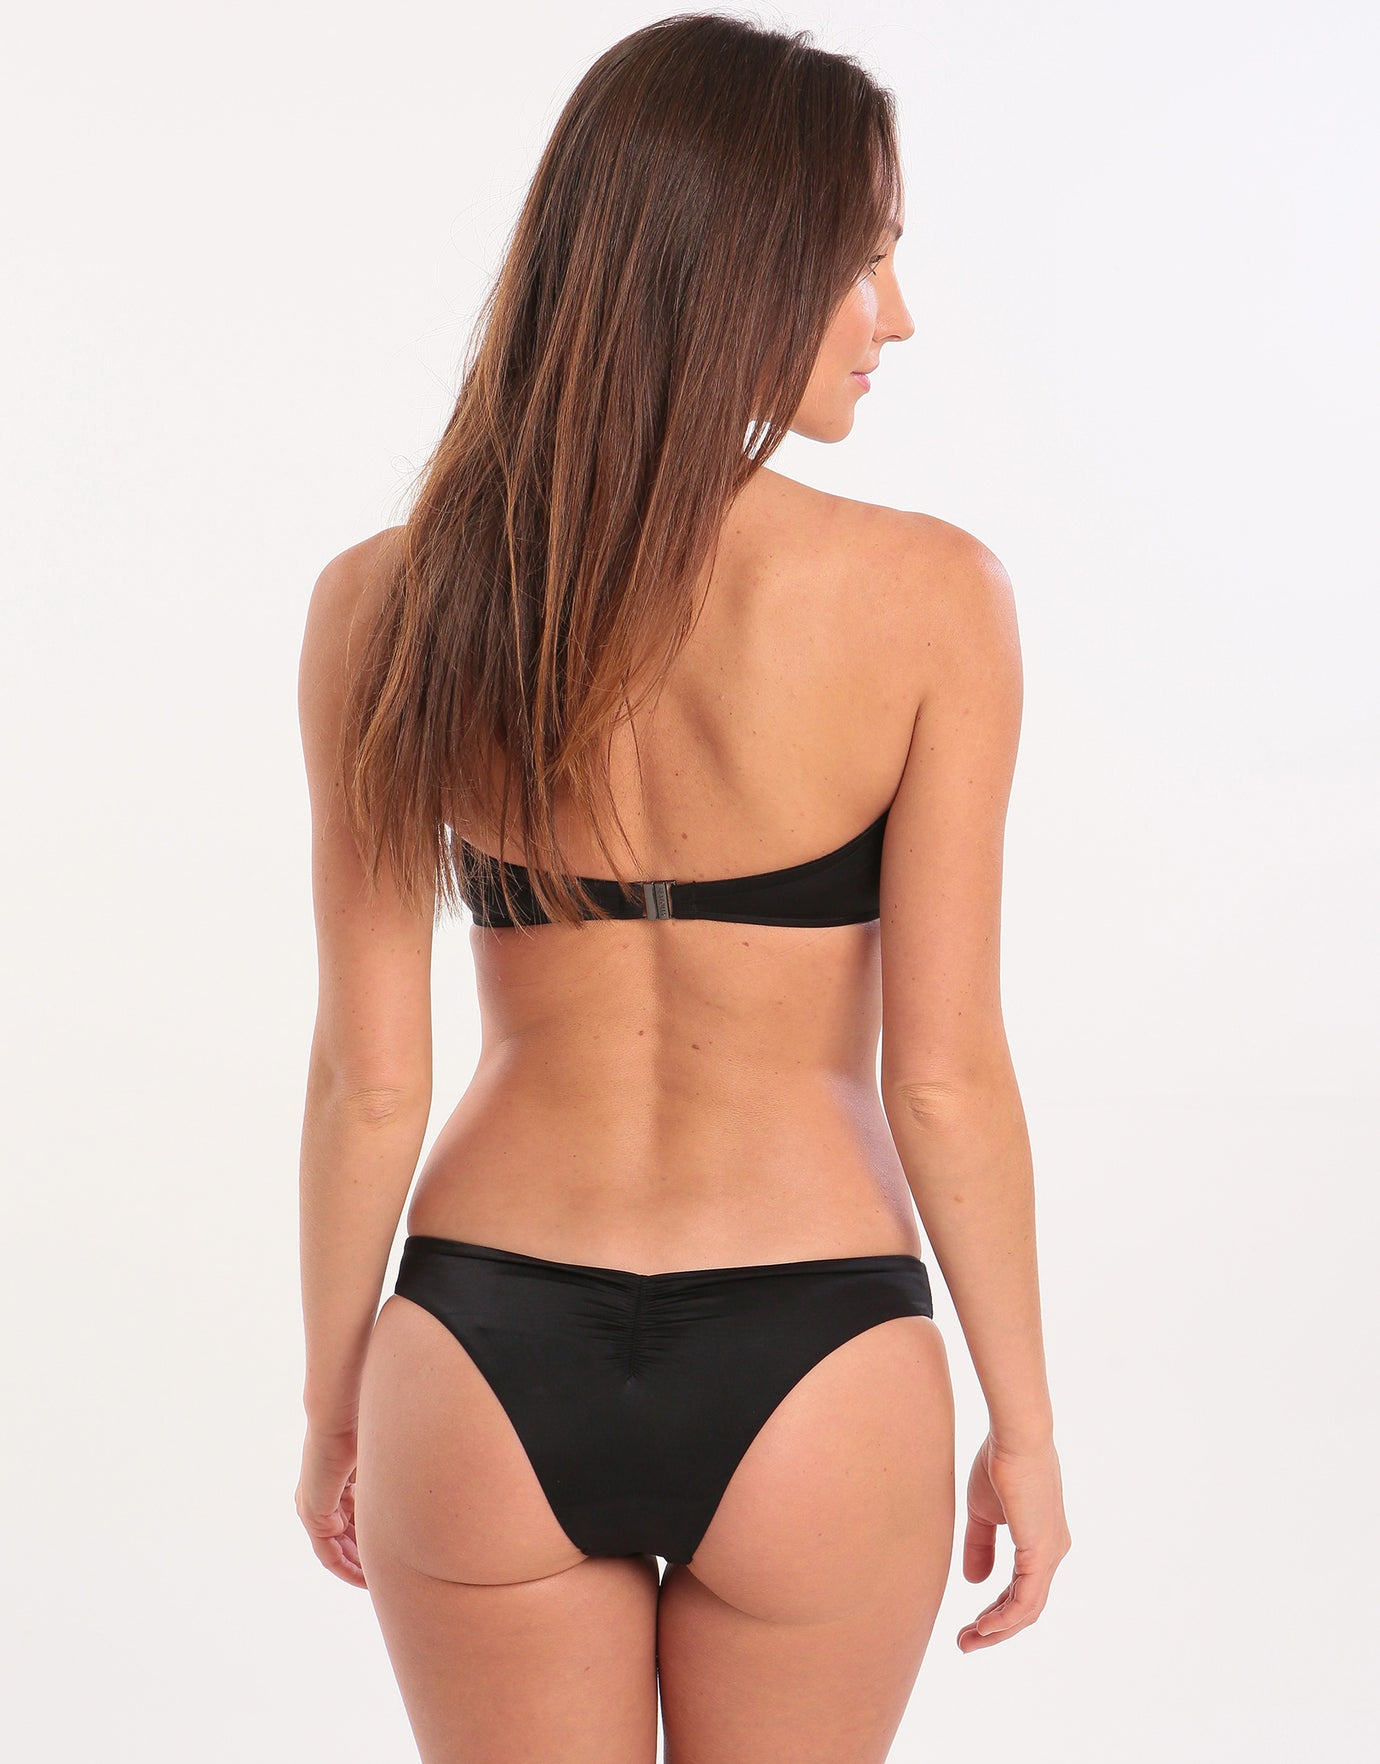 Seafolly Shine On Brazilian Bikini Bottom - Black